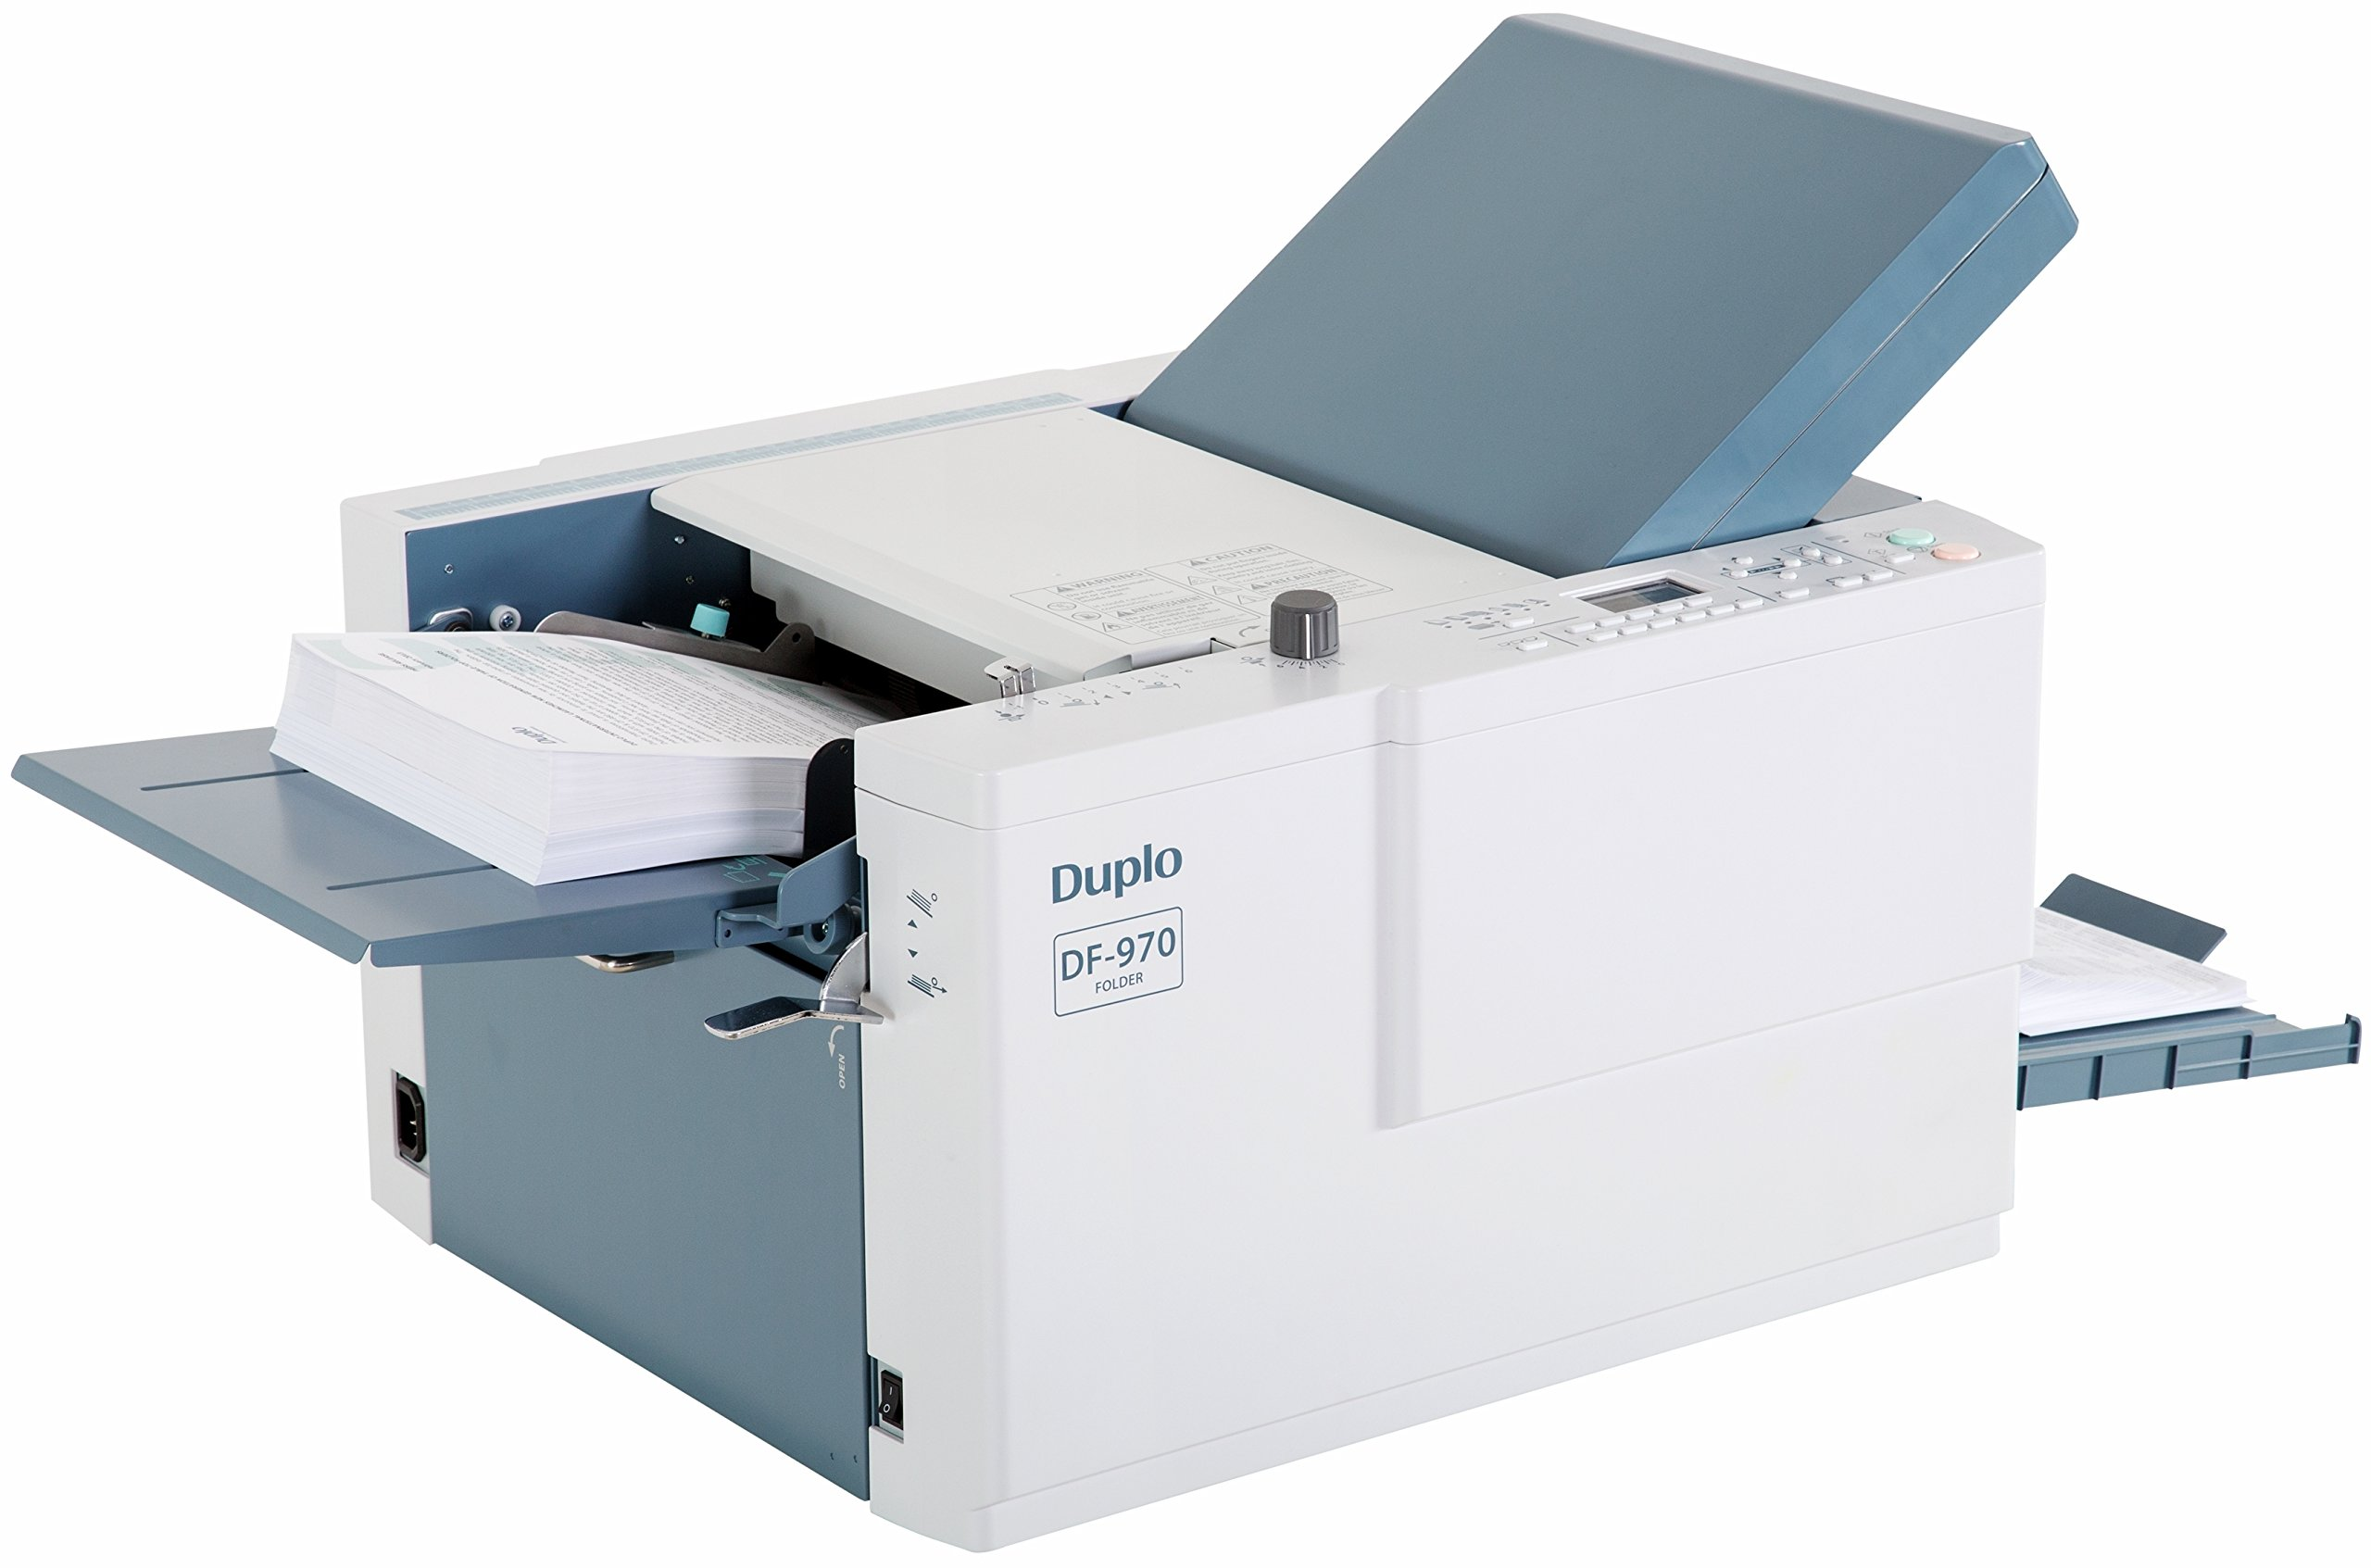 Duplo DF-970 Automatic Paper Folder, 3'' x 52-12'' x 18'' Paper Size, 52.3-157 gsm Paper Weight, Up to 500 sheets 64 gsm Feeding Tray Capacity, High speed folding up to 242 sheets per minute by Duplo